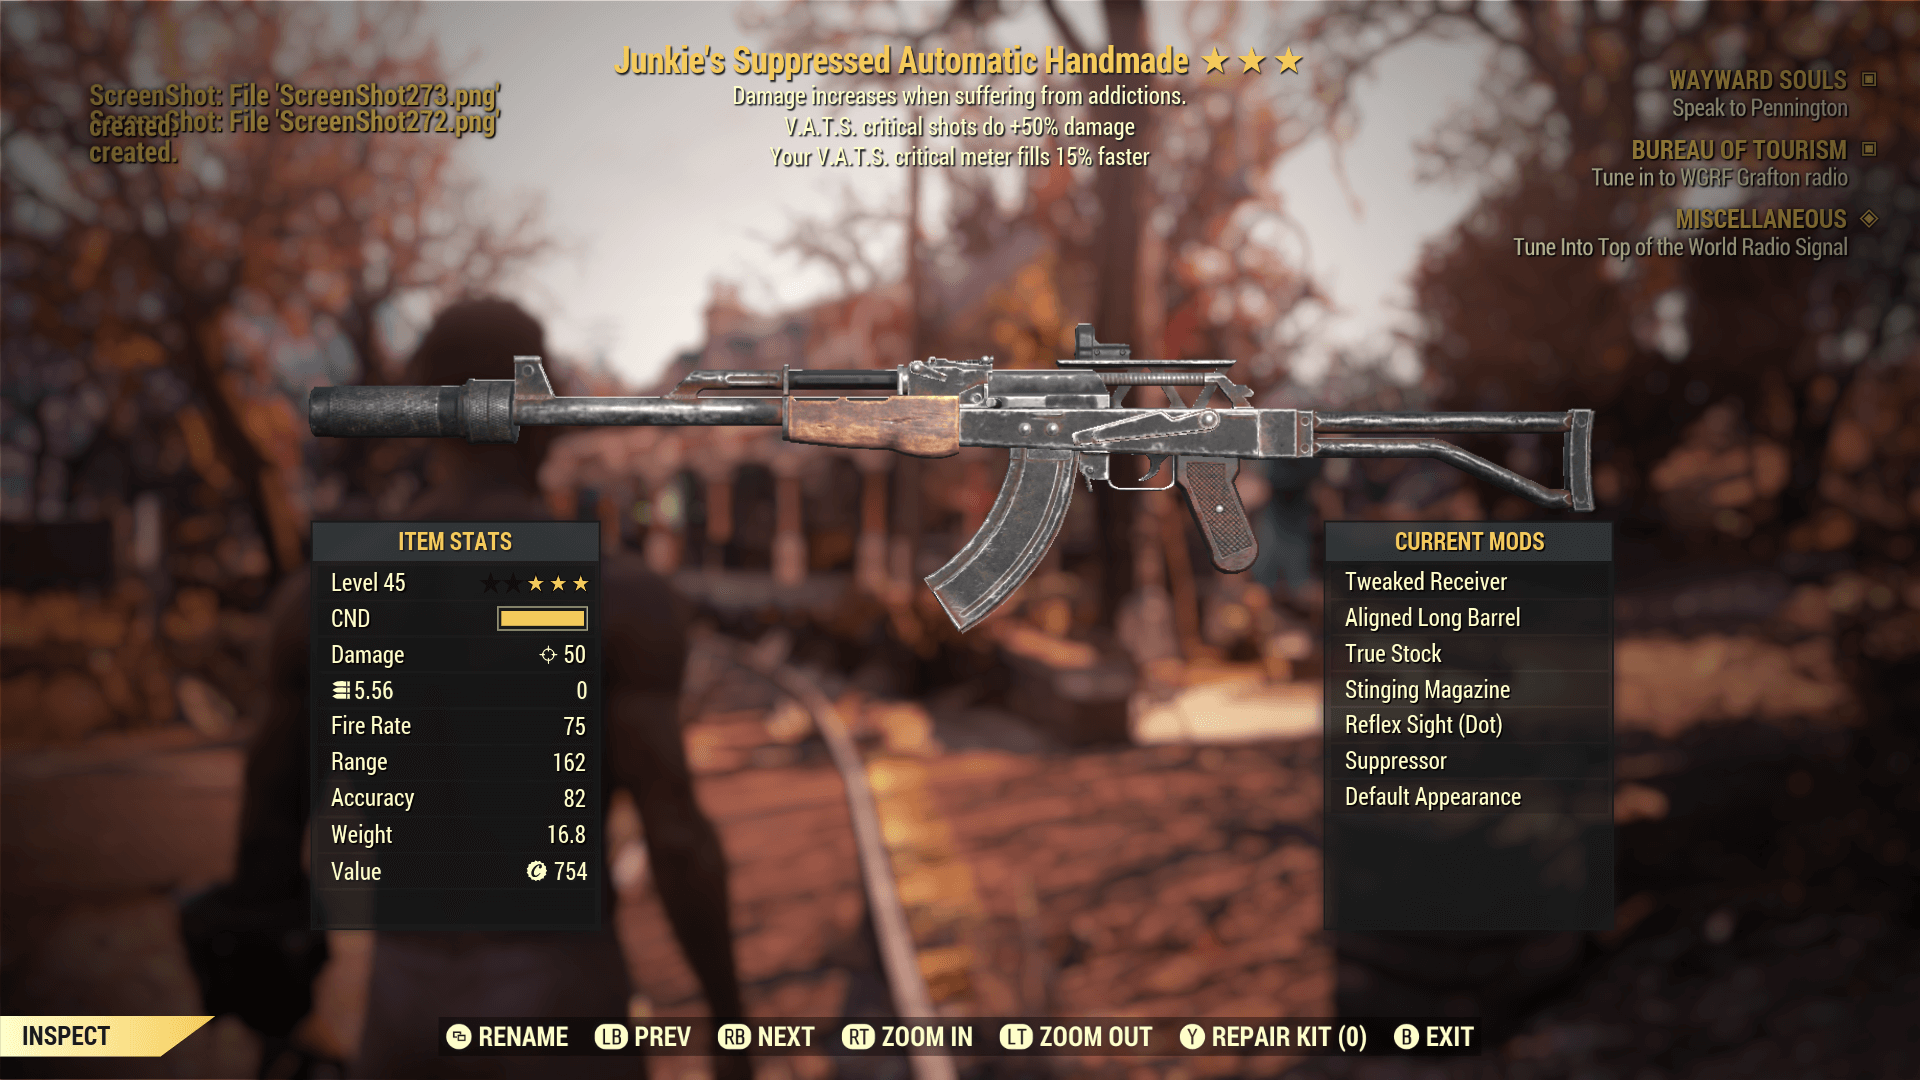 Junkie's Suppressed Automatic Handmade[V.A.T.S.critical shots do +50% damage][Your V.A.T.S.critical